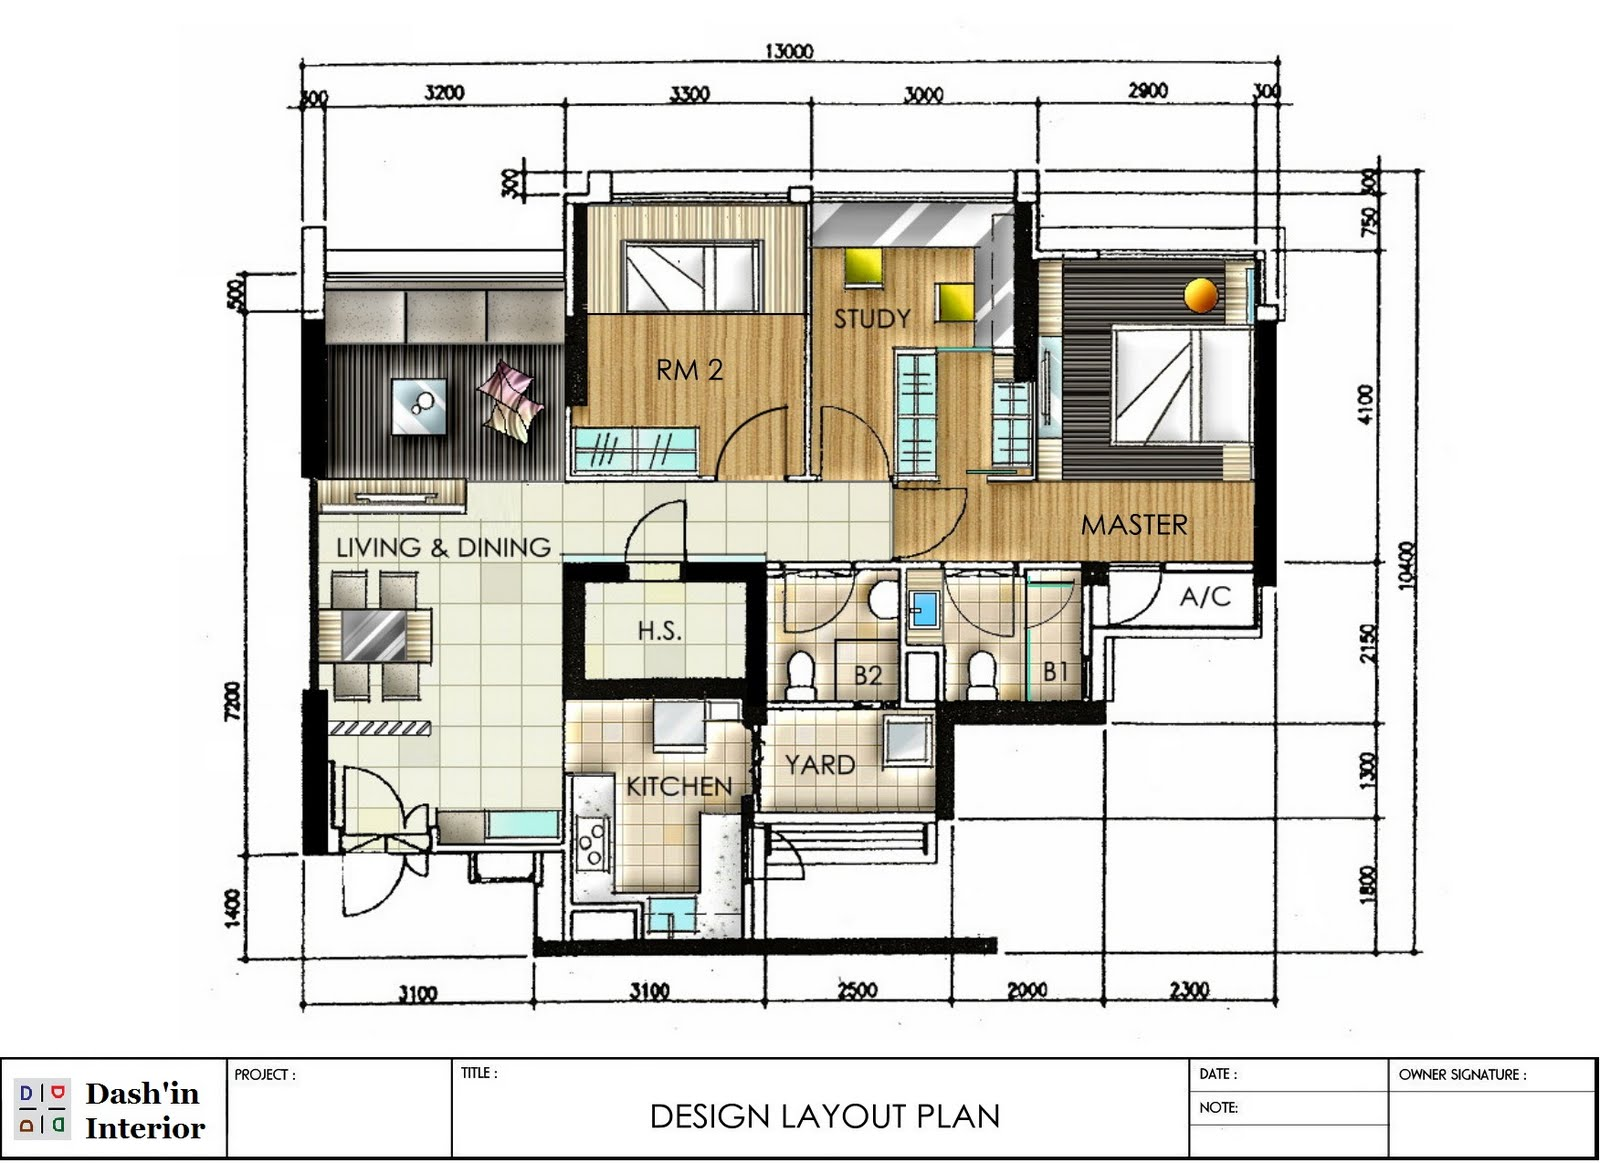 Dash 39 in interior hand drawn designs floor plan layout Home layout planner